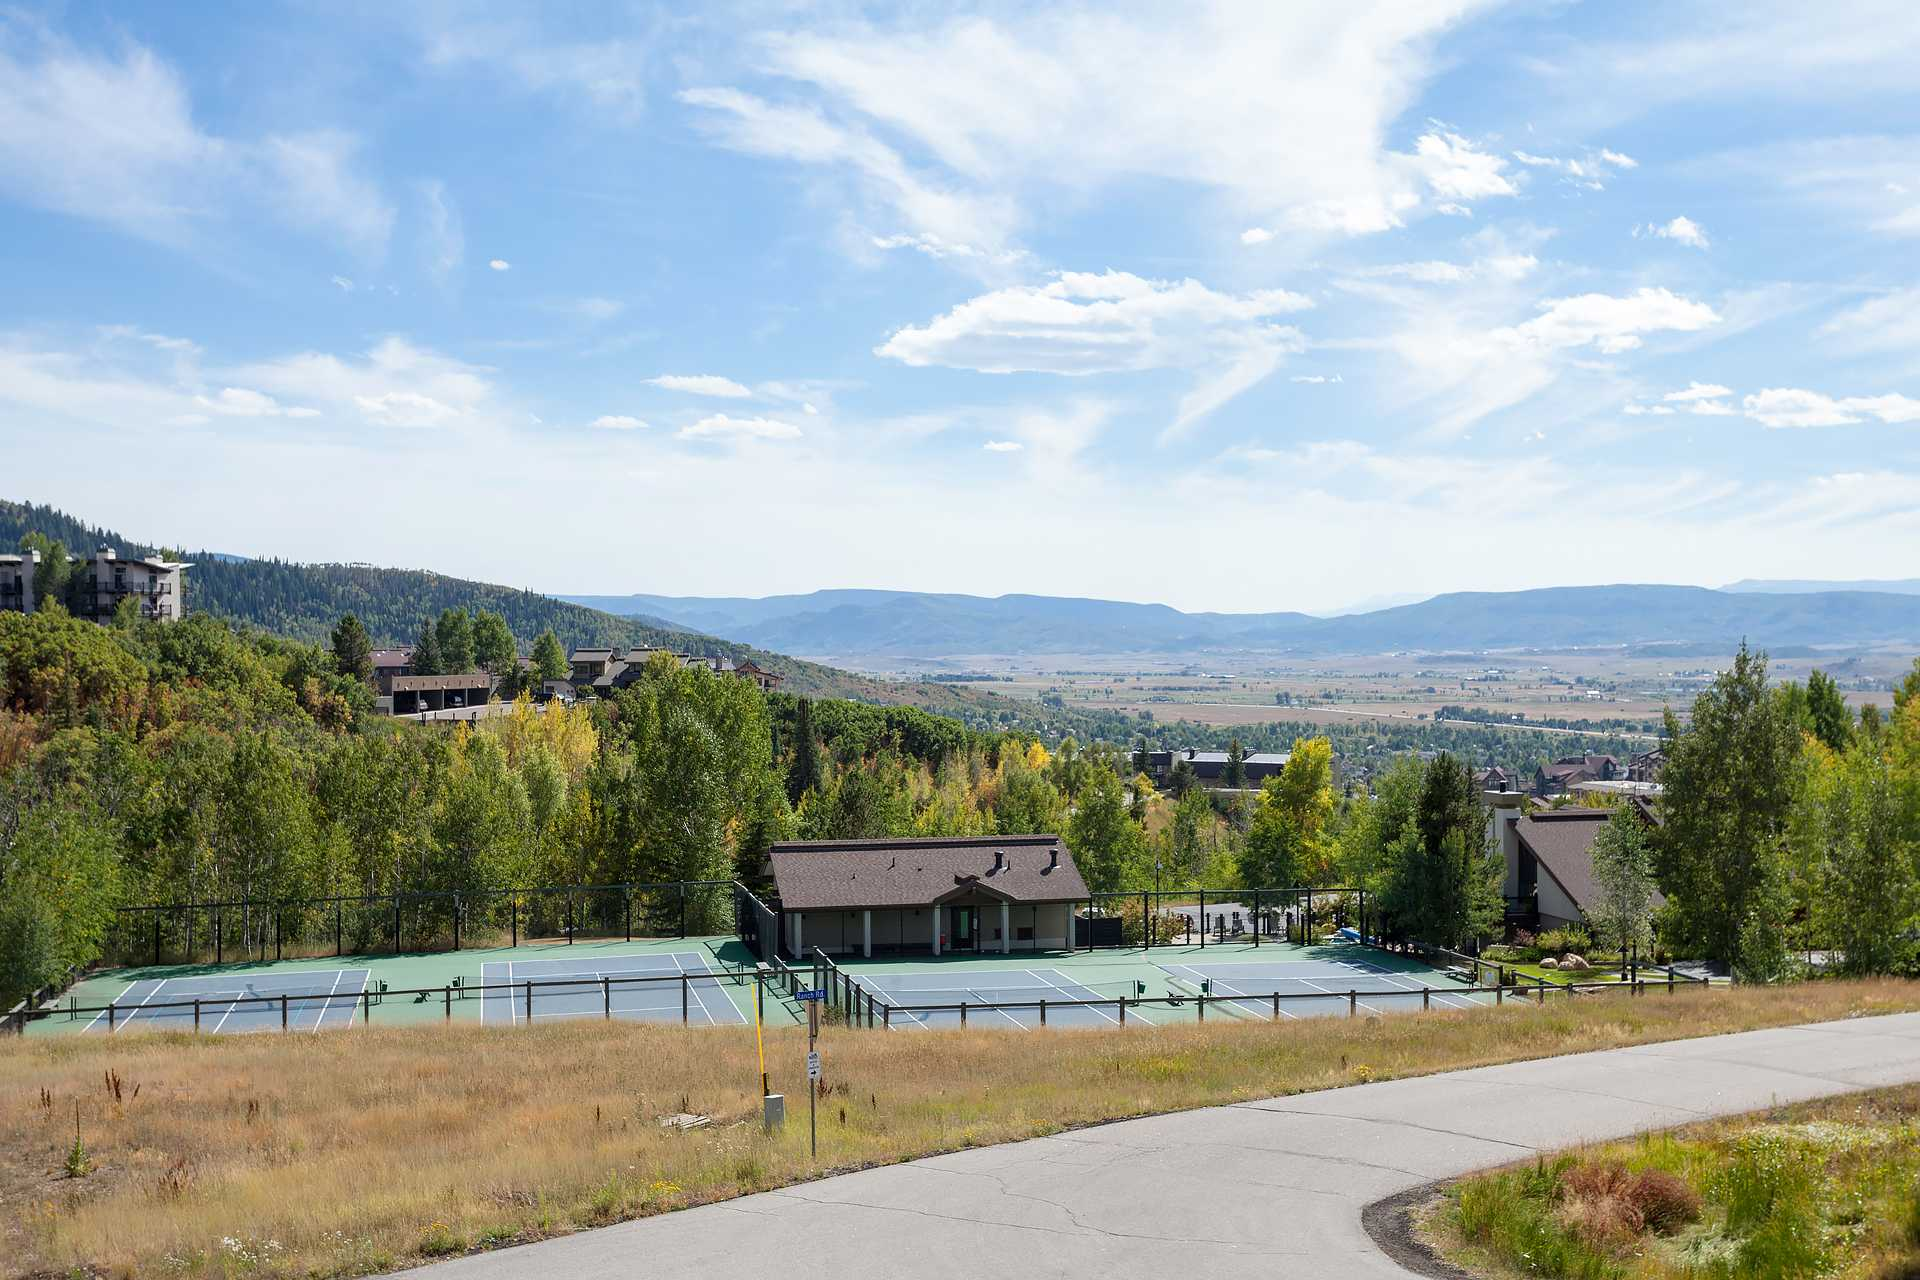 RA304: Ranch at Steamboat